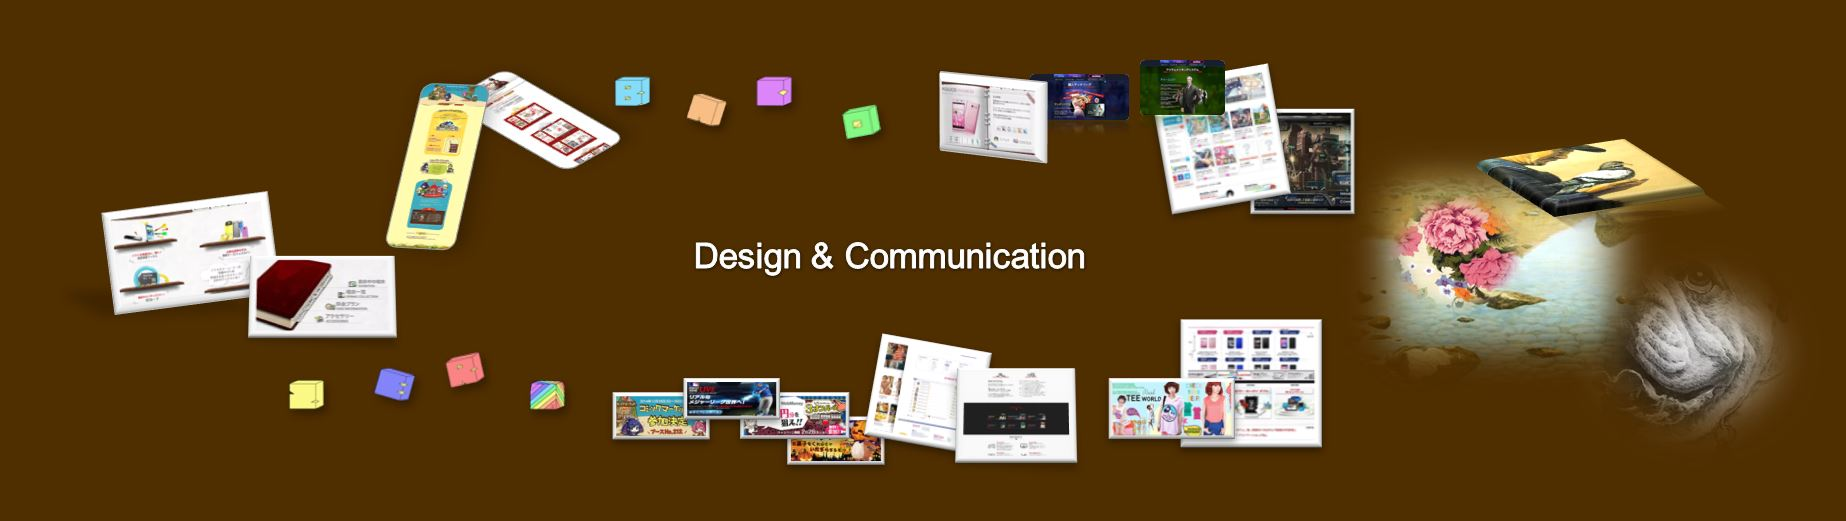 Design & Communication